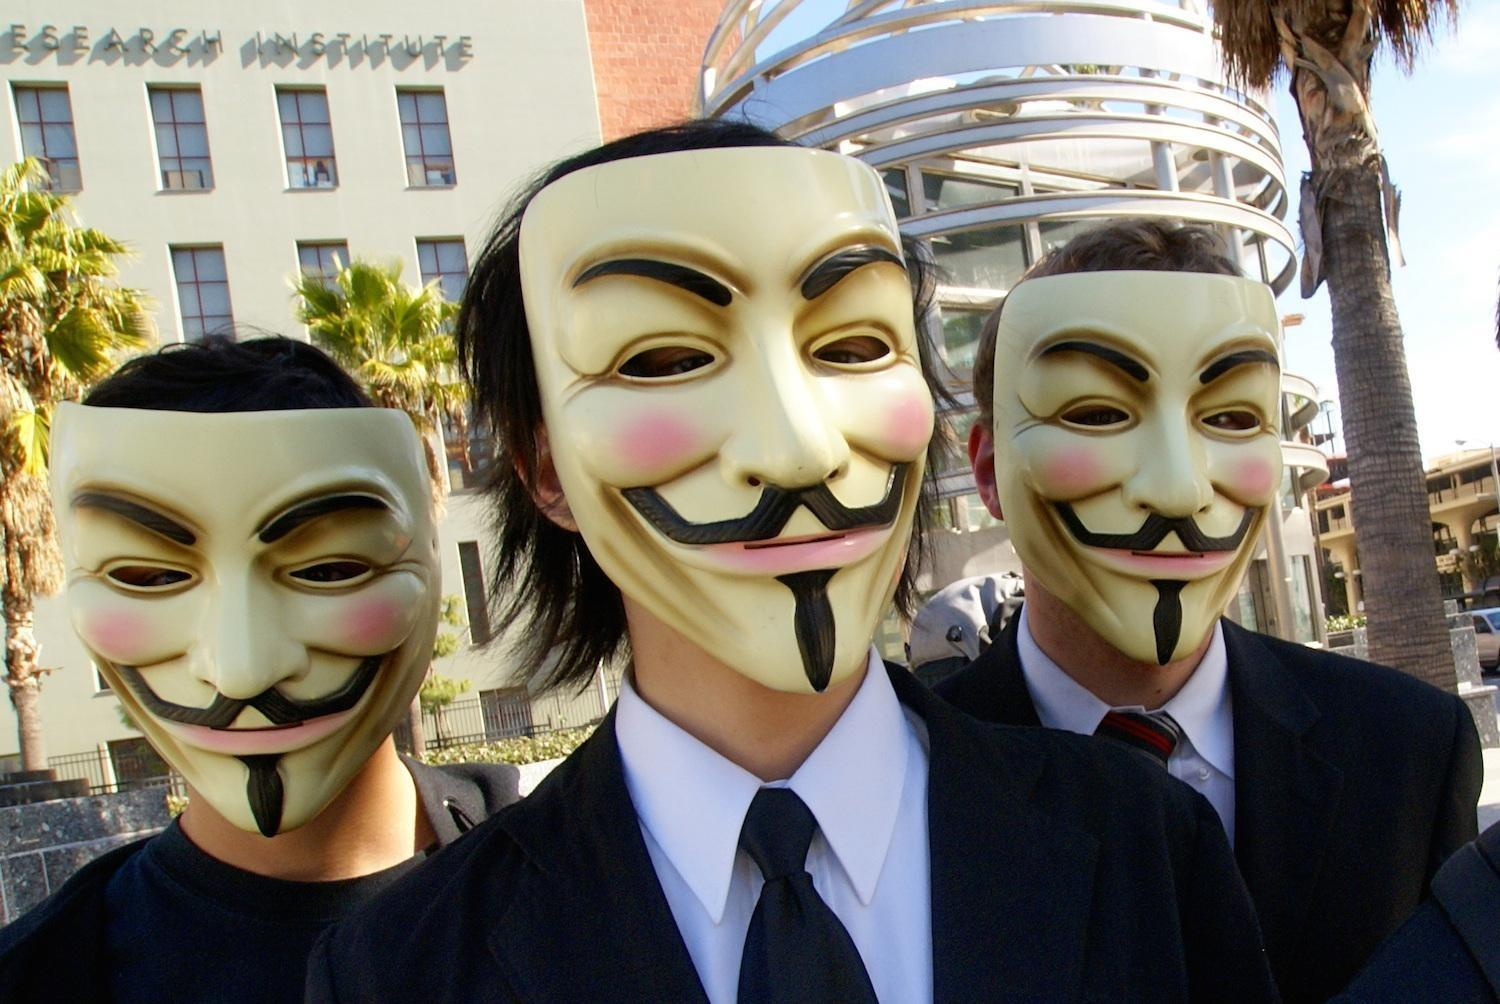 Anonymous hacks ISIS site, replaces it with Viagra ad